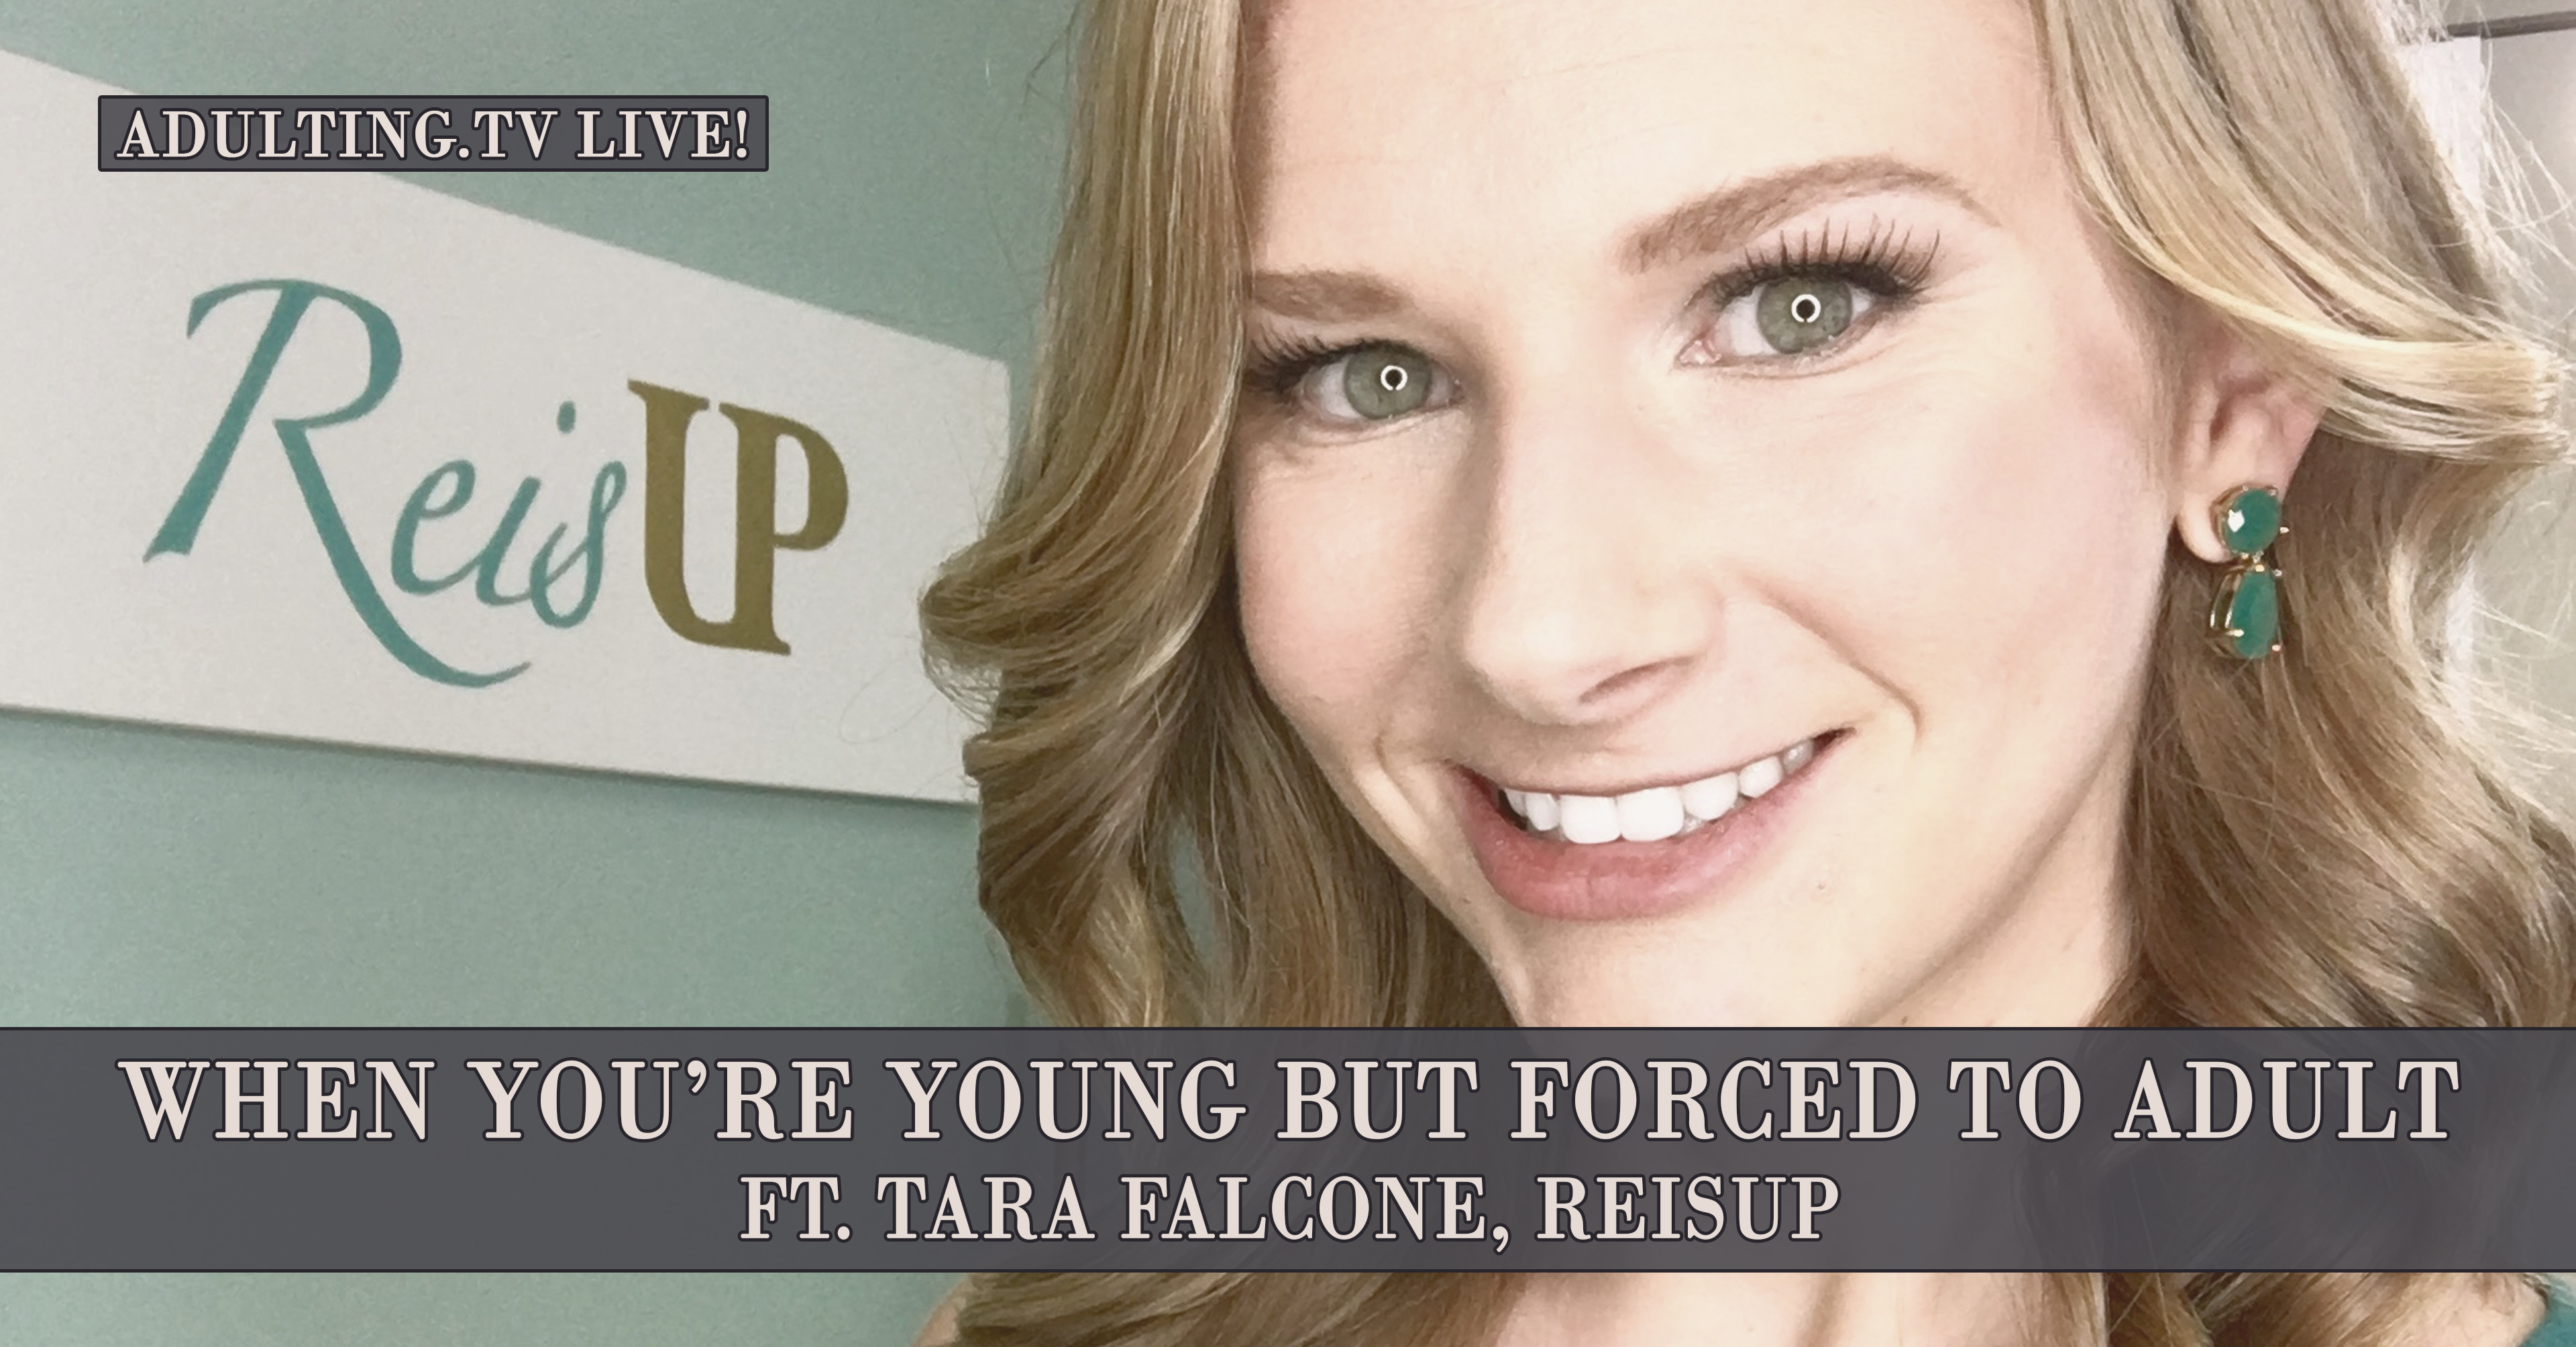 [B025] When You're Young But Forced to Adult ft. Tara Falcone, ReisUP